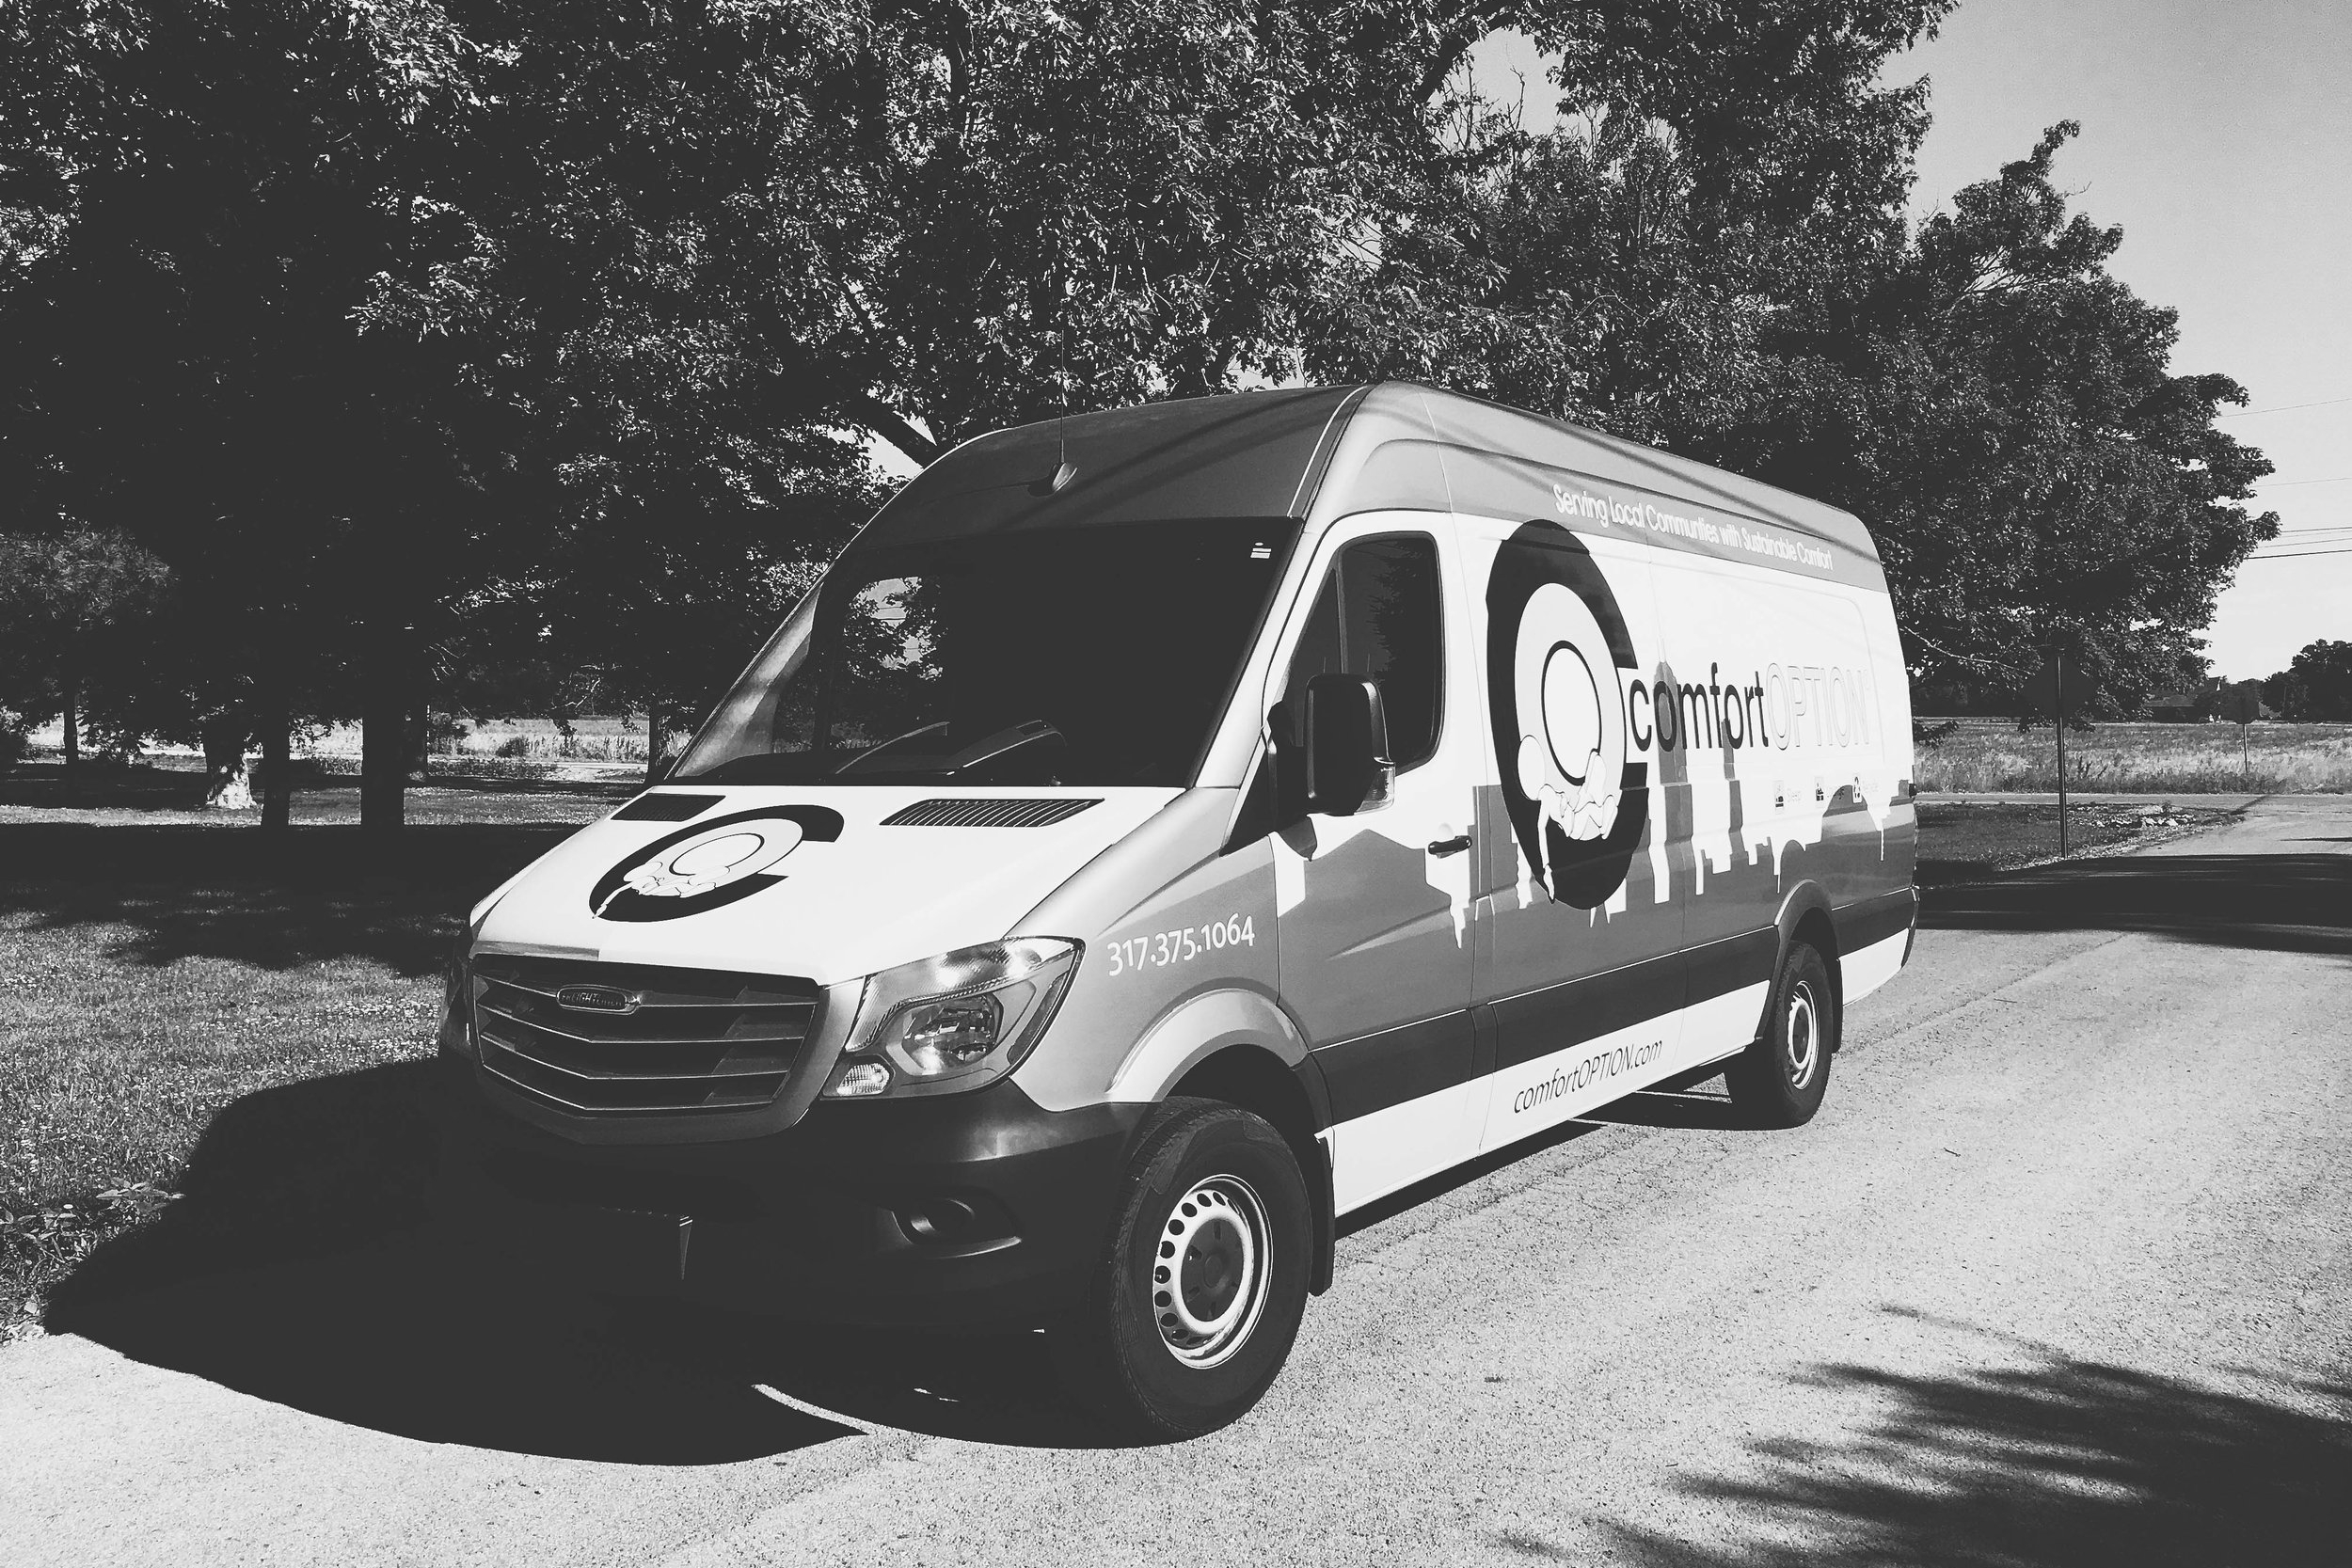 Comfort Option delivery van. Free white glove delivery is included with each customized mattress purchase.